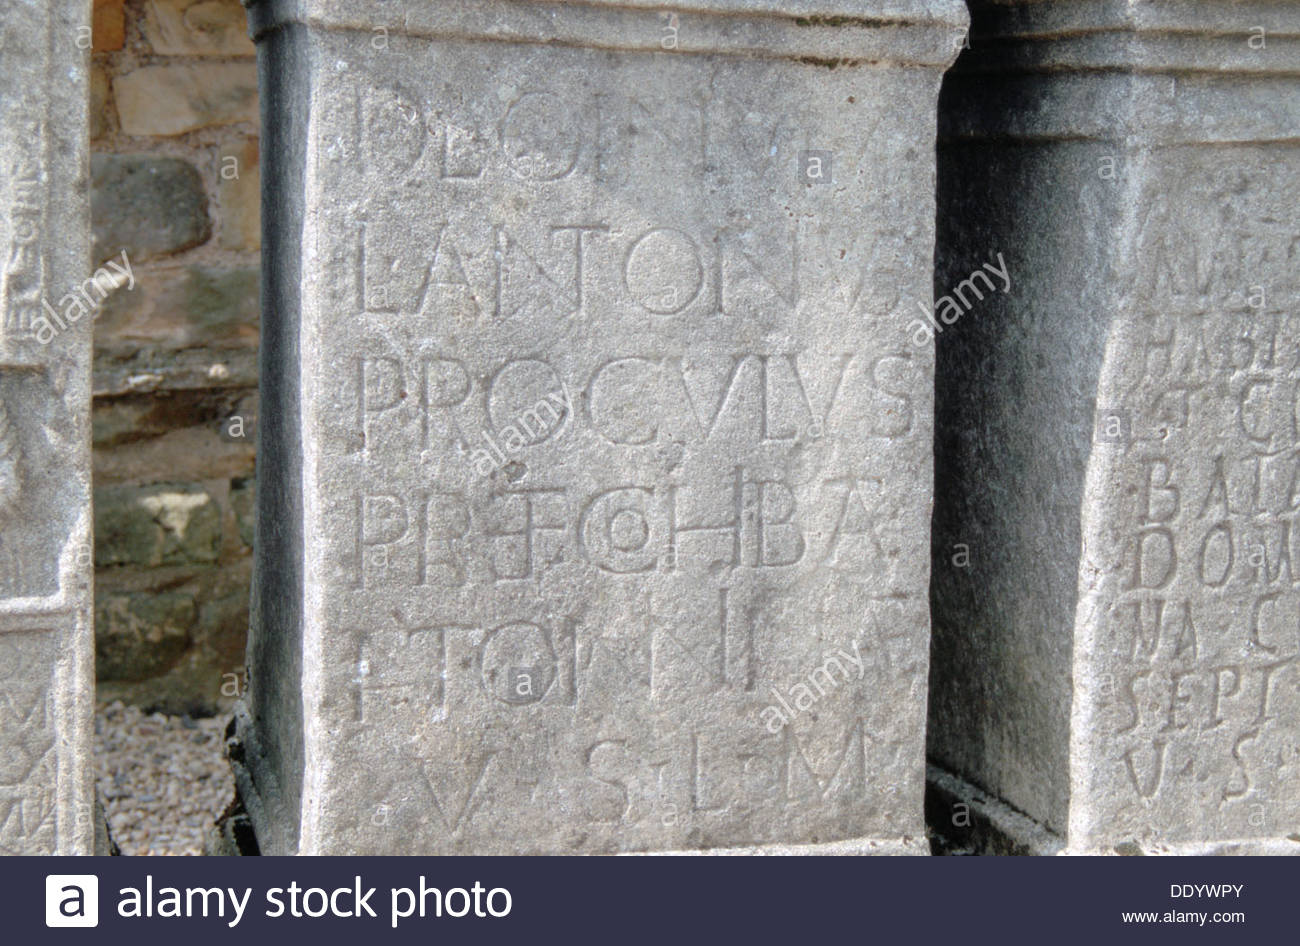 Latin inscription on altar (replica), Temple of Mithras on Hadrian's Wall, Carrawburgh, Northumberla Artist: Dorothy Burrows - Stock Image